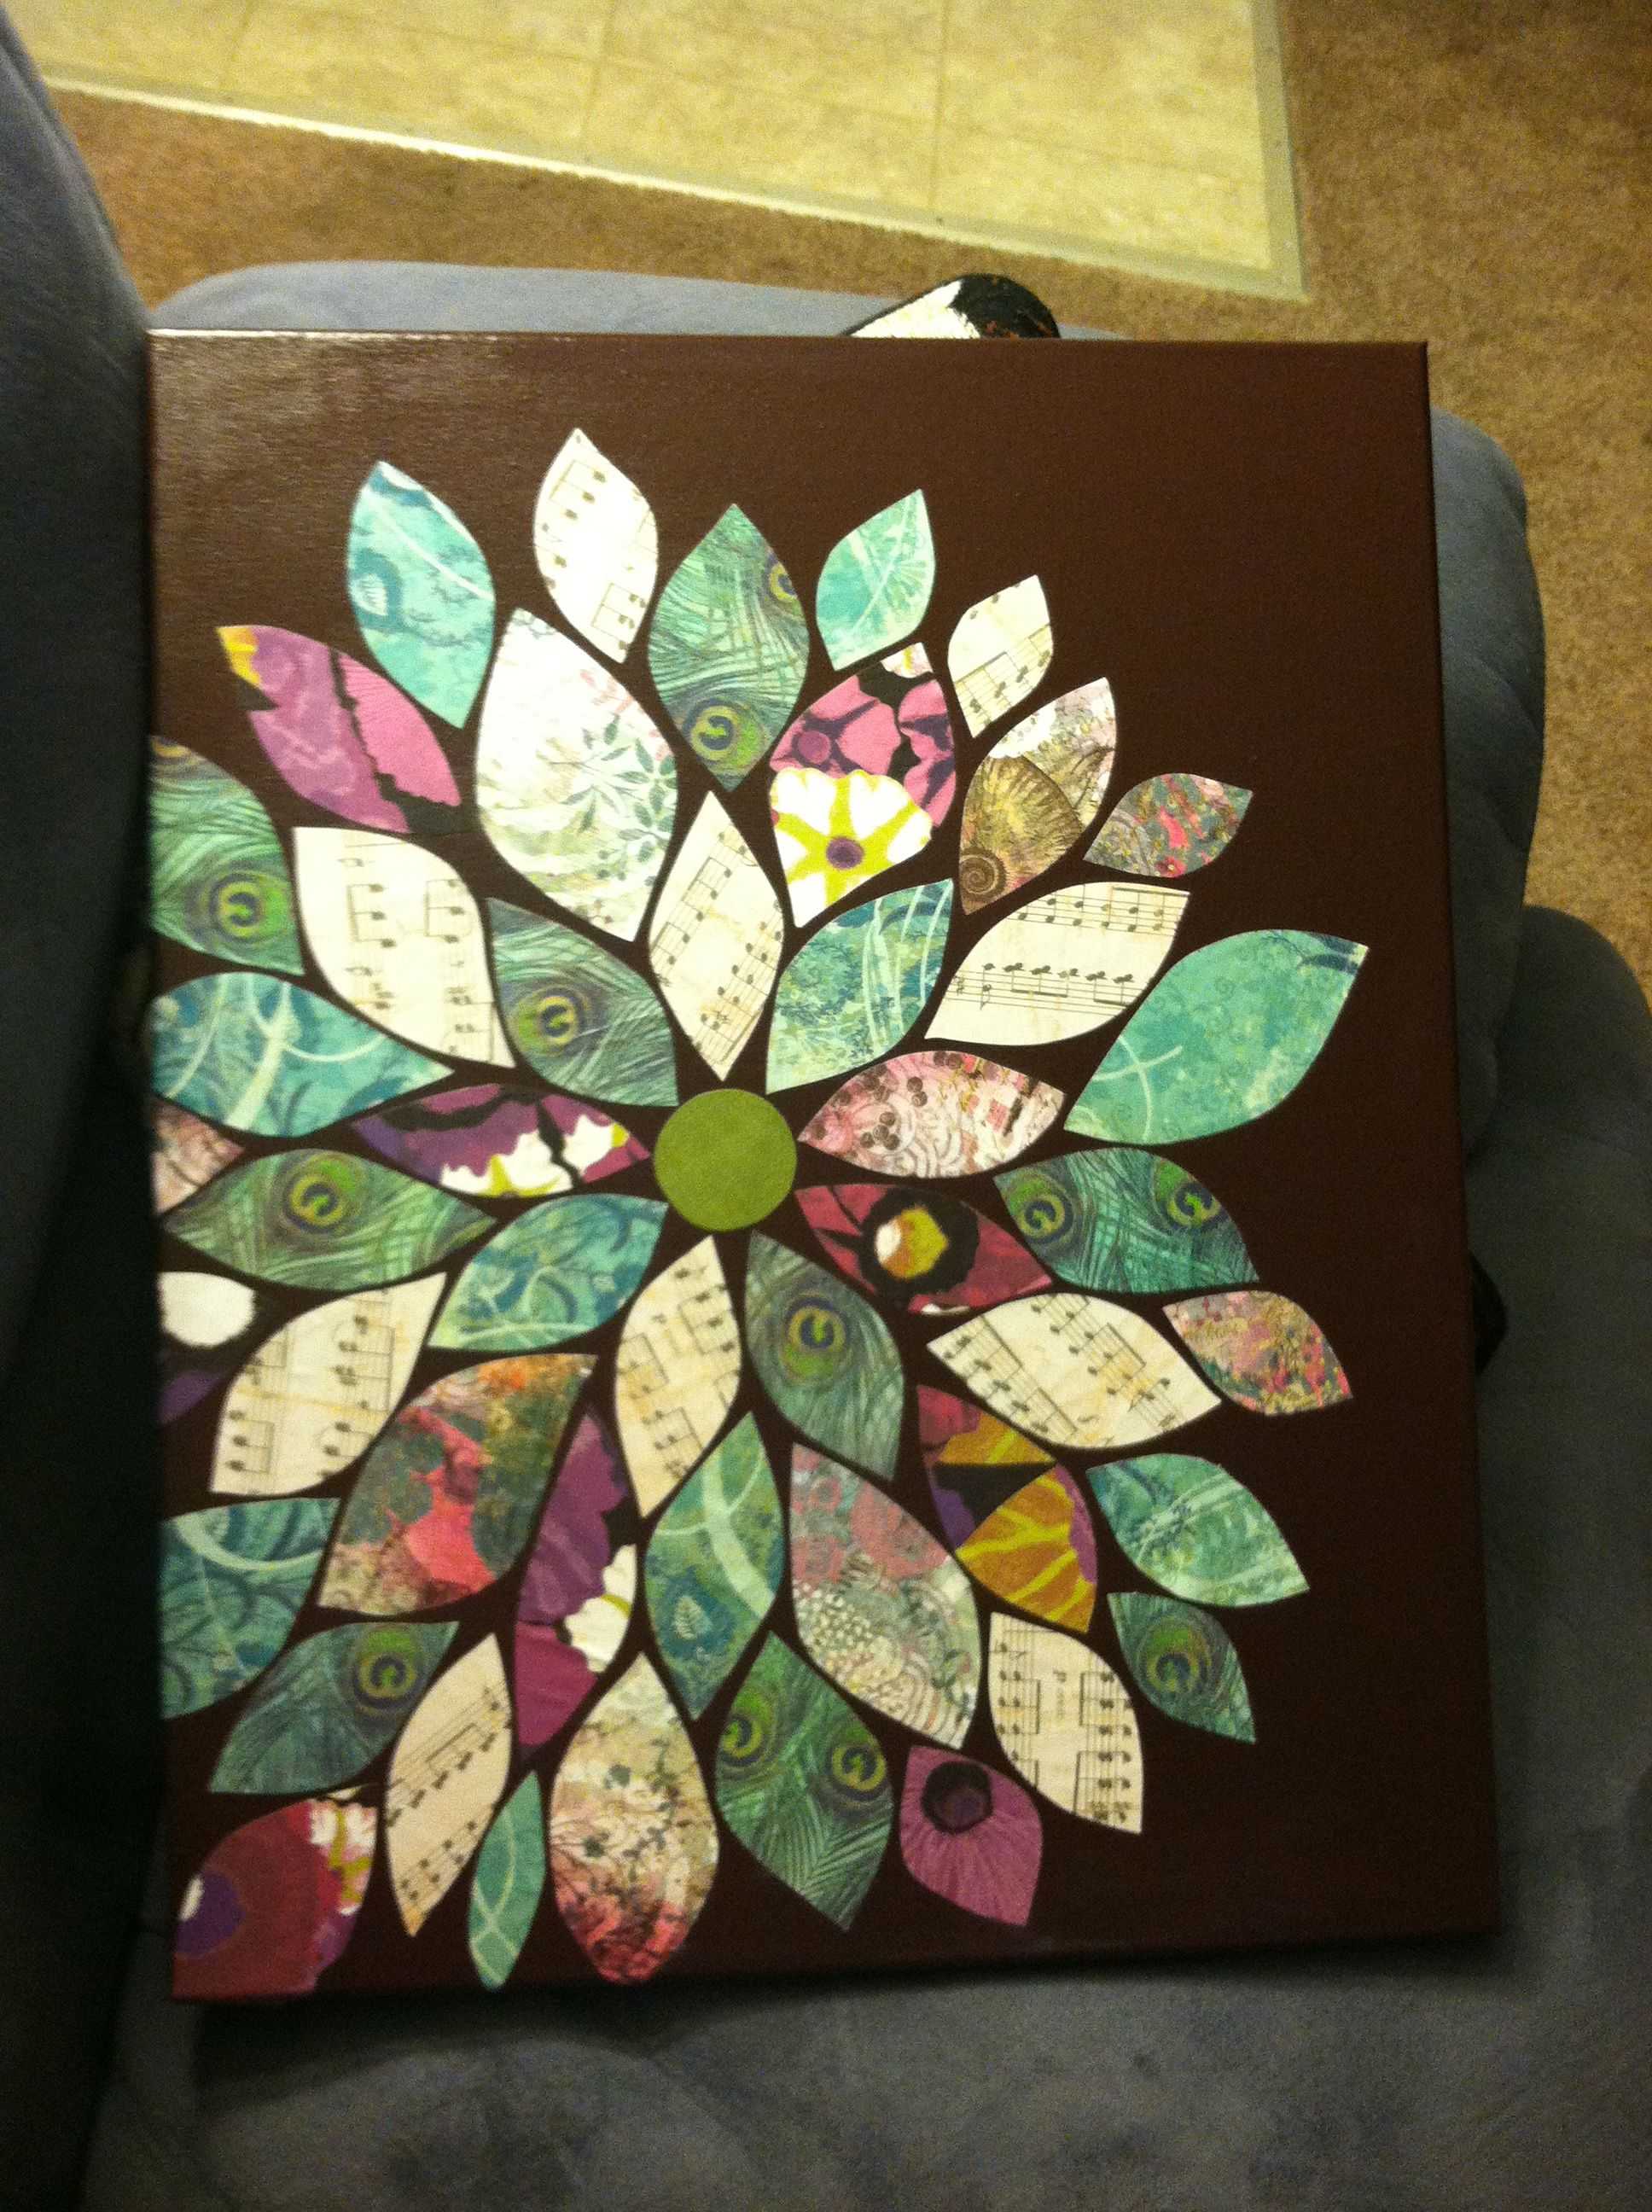 Scrapbook paper art projects - Scrapbook Paper Large Canvas And Acrylic Paint Making Flower Wall Art